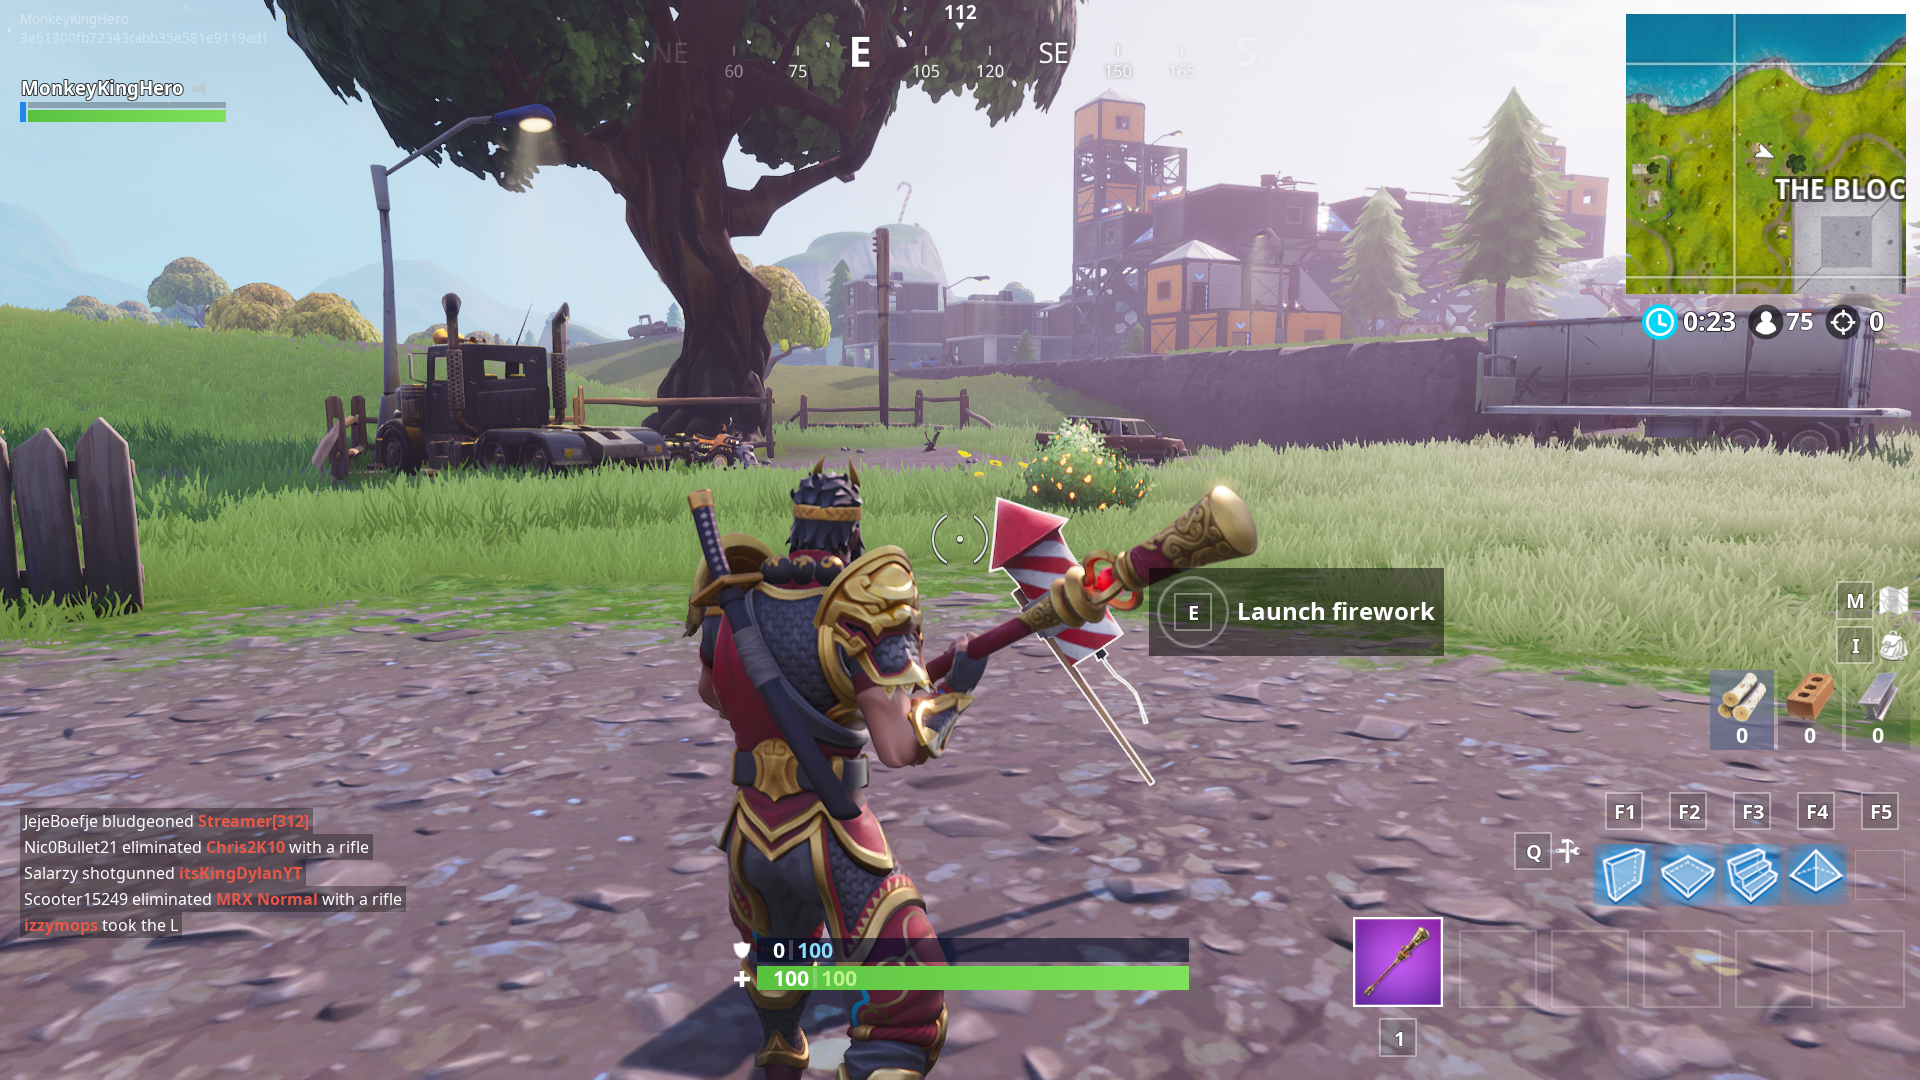 How To Complete The Launch Fireworks Challenge In Fortnite Season